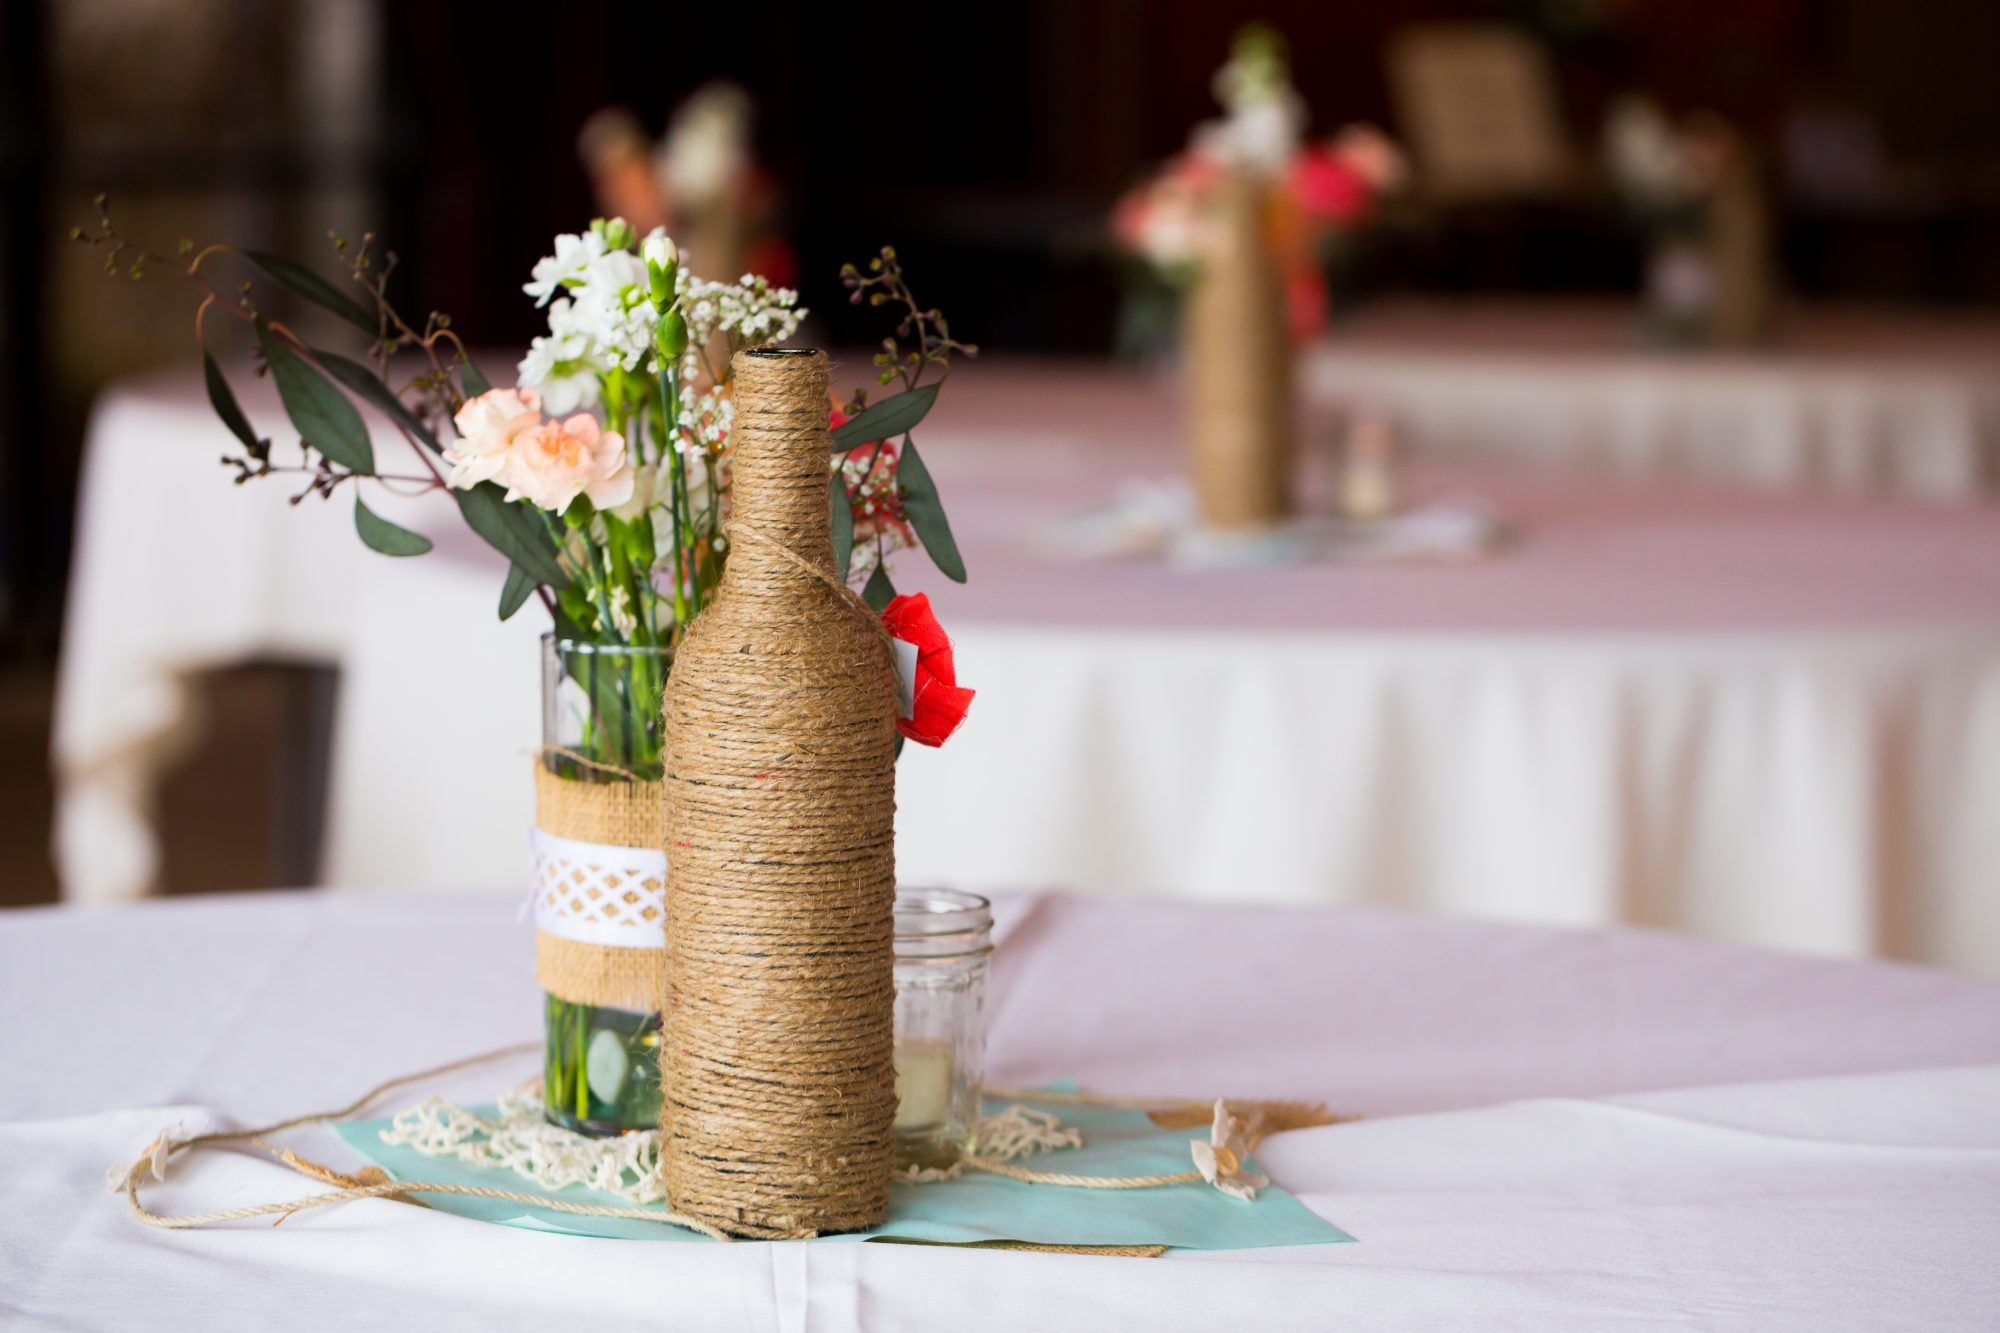 wine bottle centerpiece.jpg